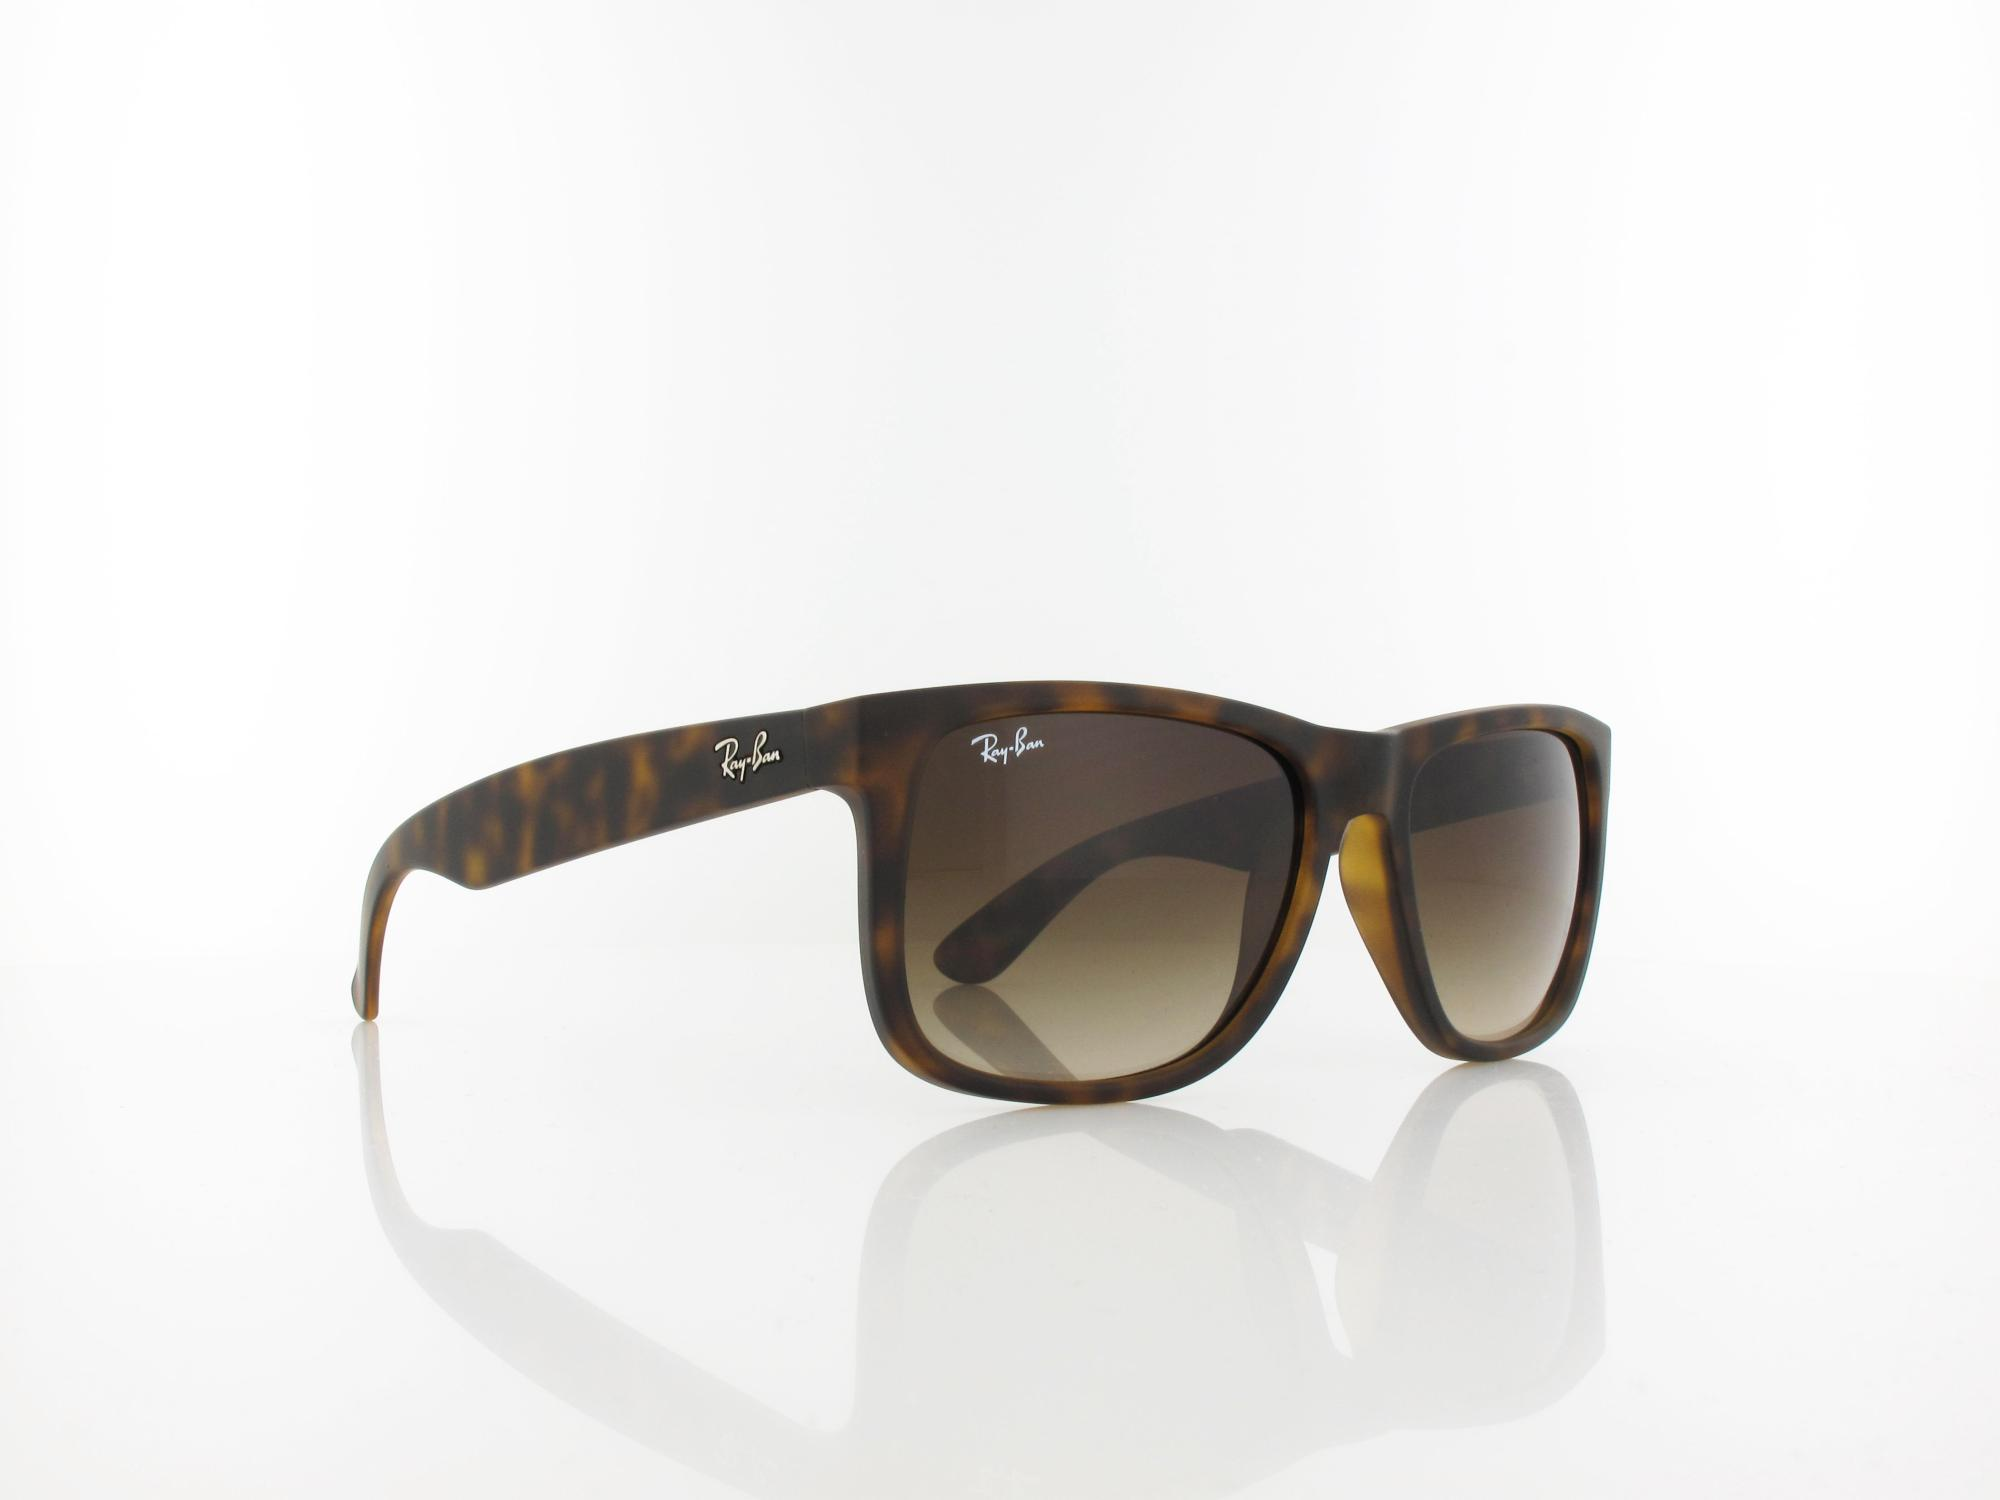 Ray Ban | Justin RB4165 710/13 54 | rubber light havana / brown gradient